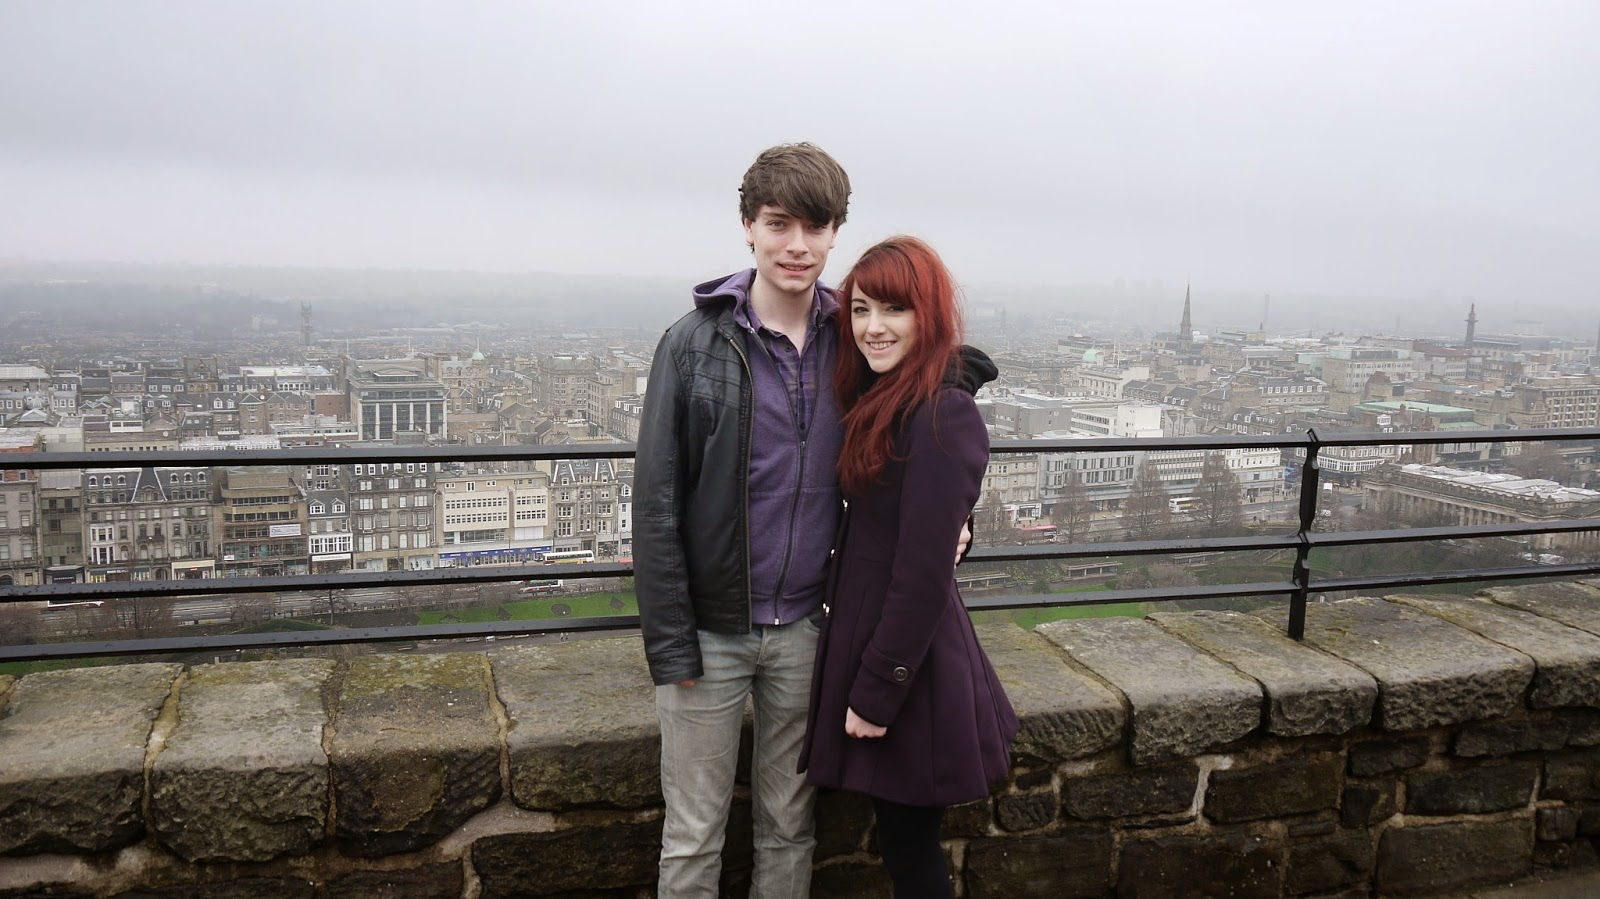 couple at edinburgh castle scotland